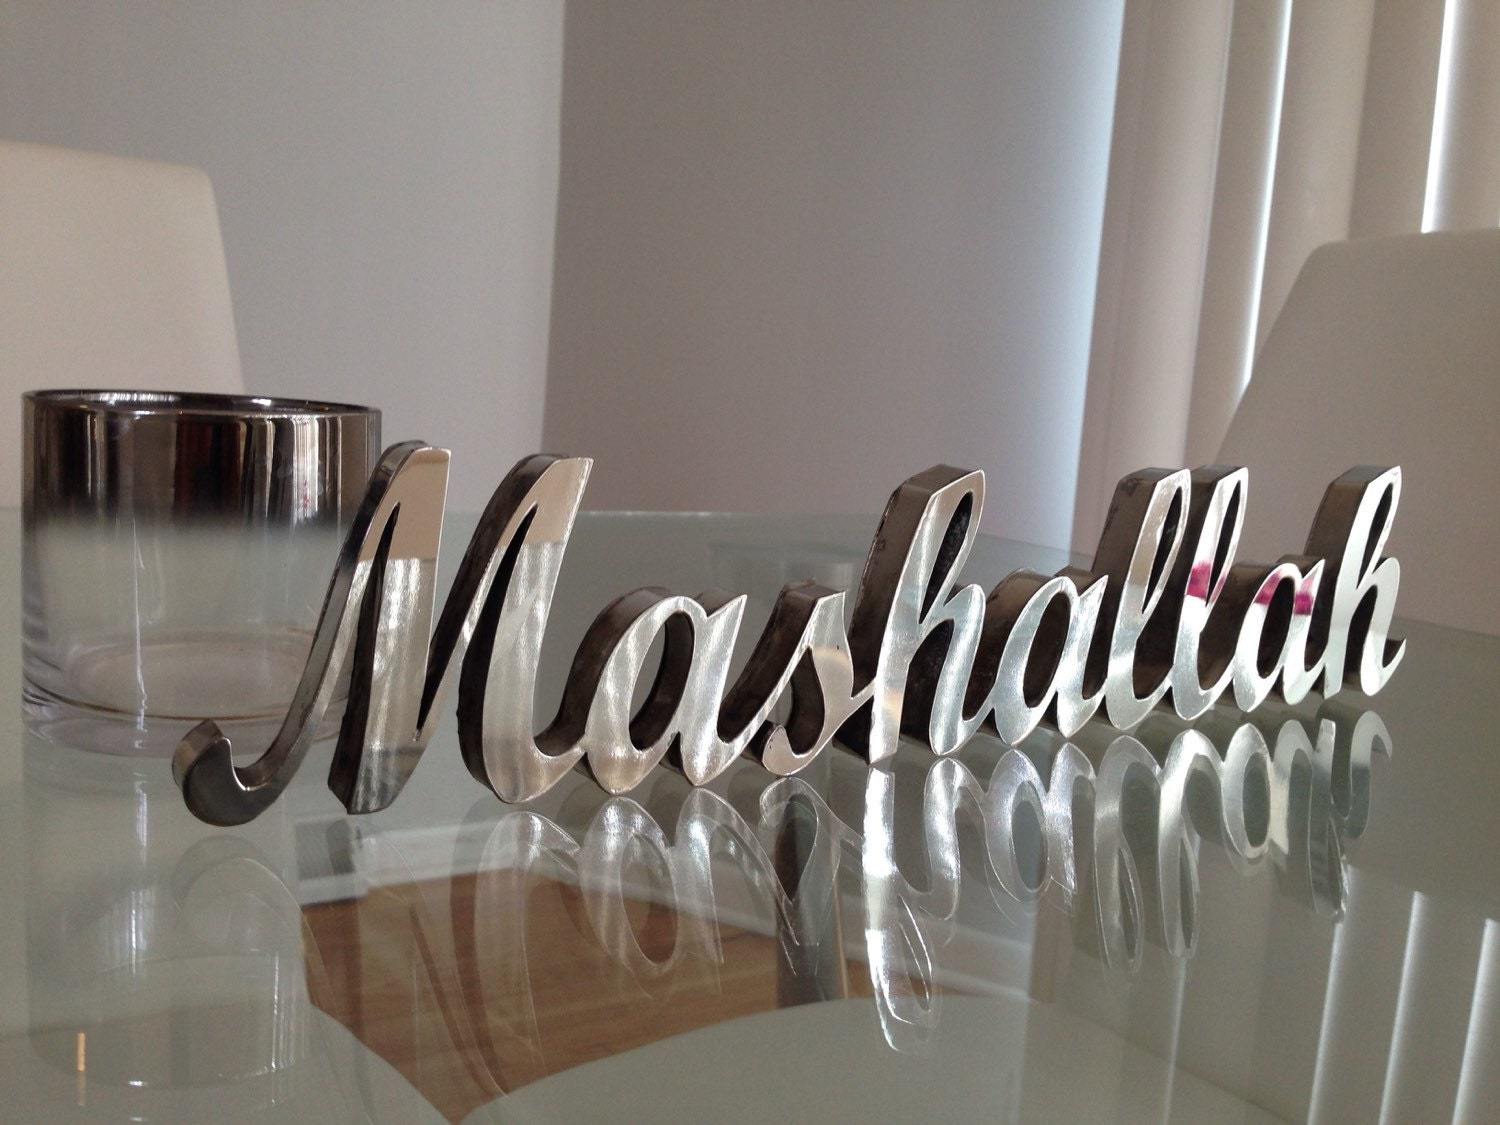 Stainless steel 3d mashallah table decor by modernwallart1 for Stainless steel wall art